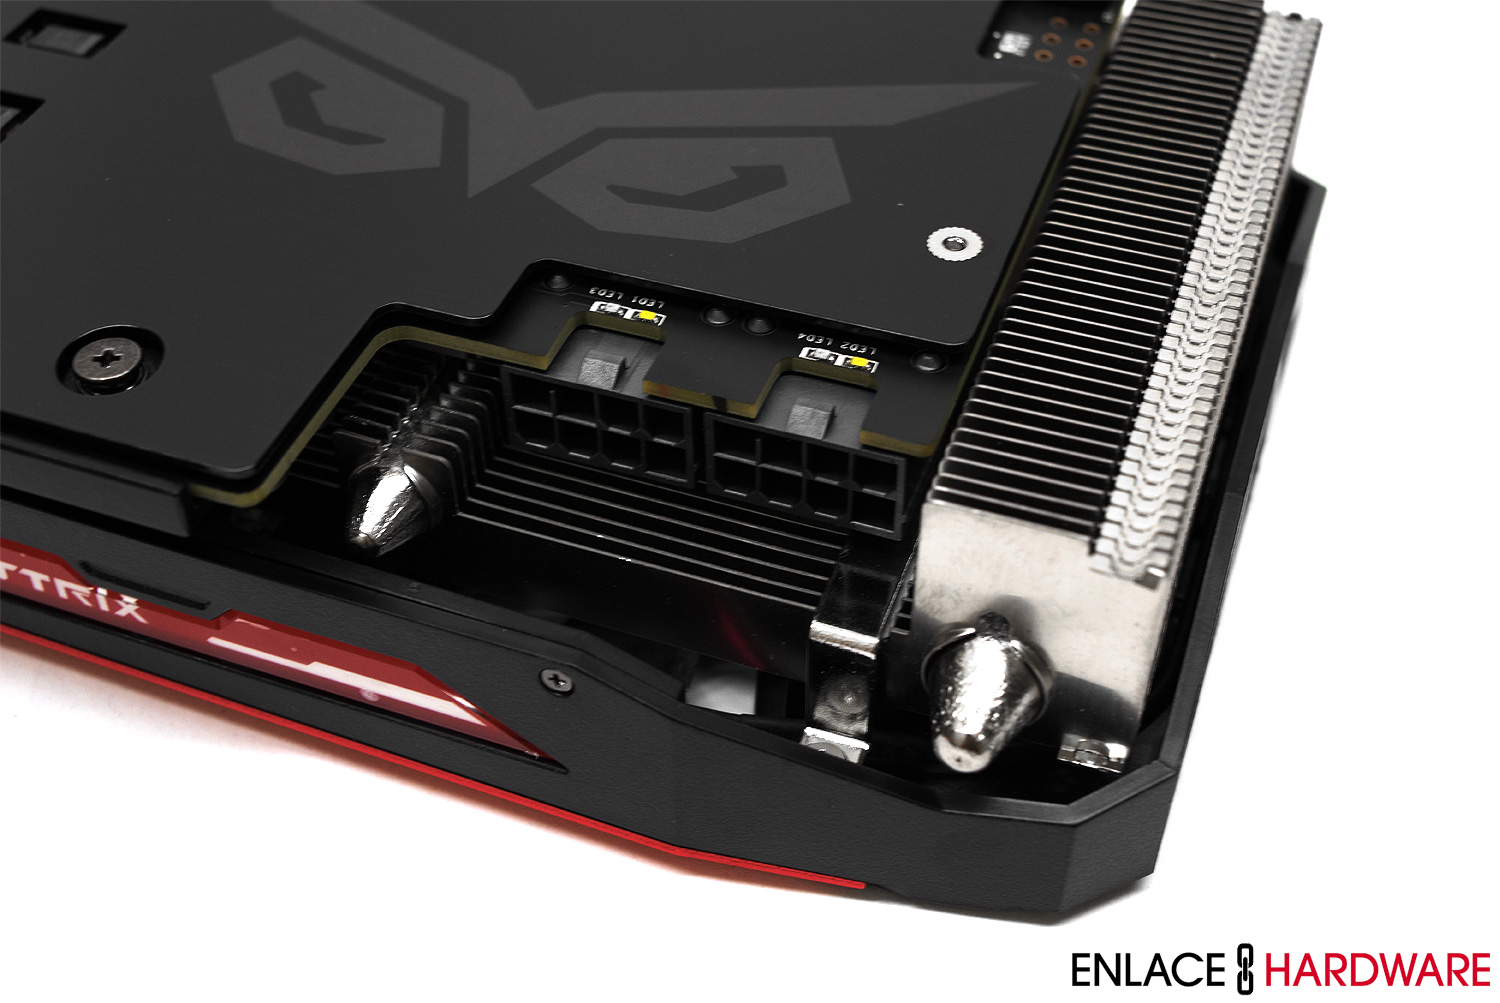 ASUS-Strix-GeForce-GTX-980-Ti-Review-9